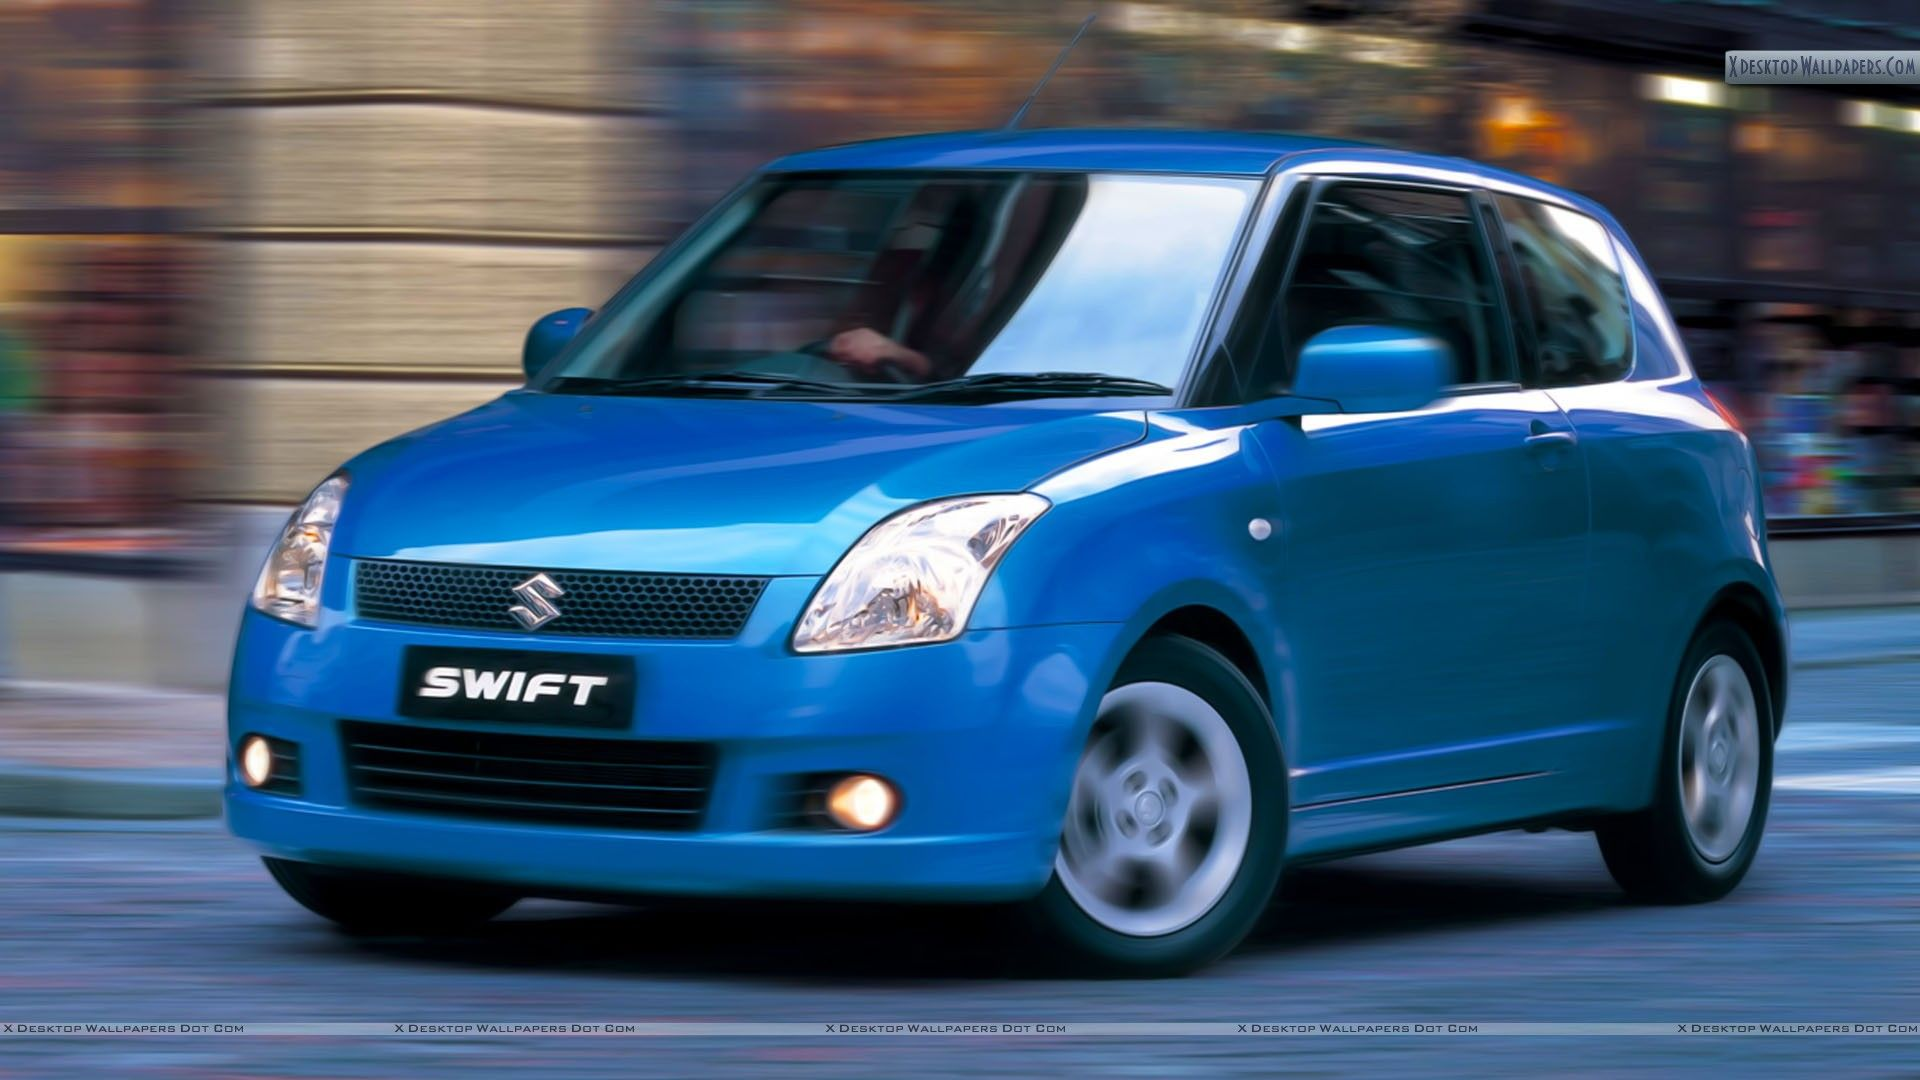 Suzuki swift sport 2013 pictures to pin on pinterest - Suzuki Swift Sport Blue Car Outside Street Wallpaper